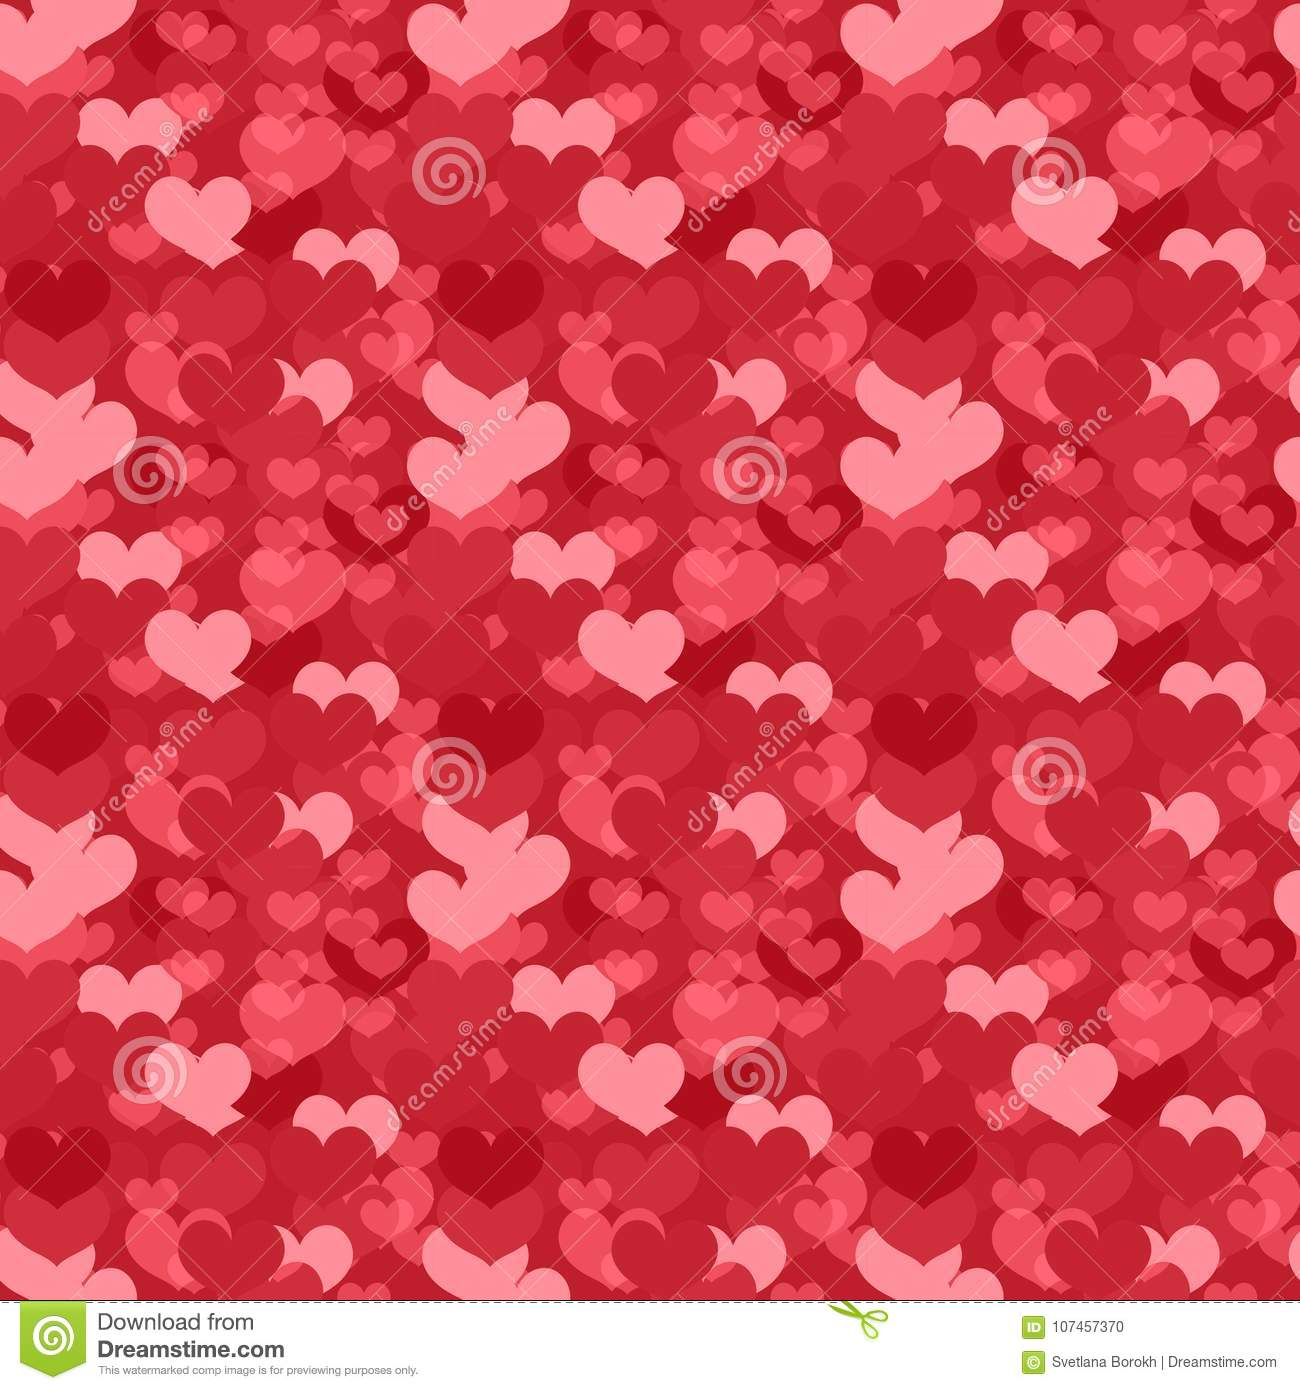 Valentines Day Seamless Pattern Heart Endless Background Romance Love Repeating Texture Holiday